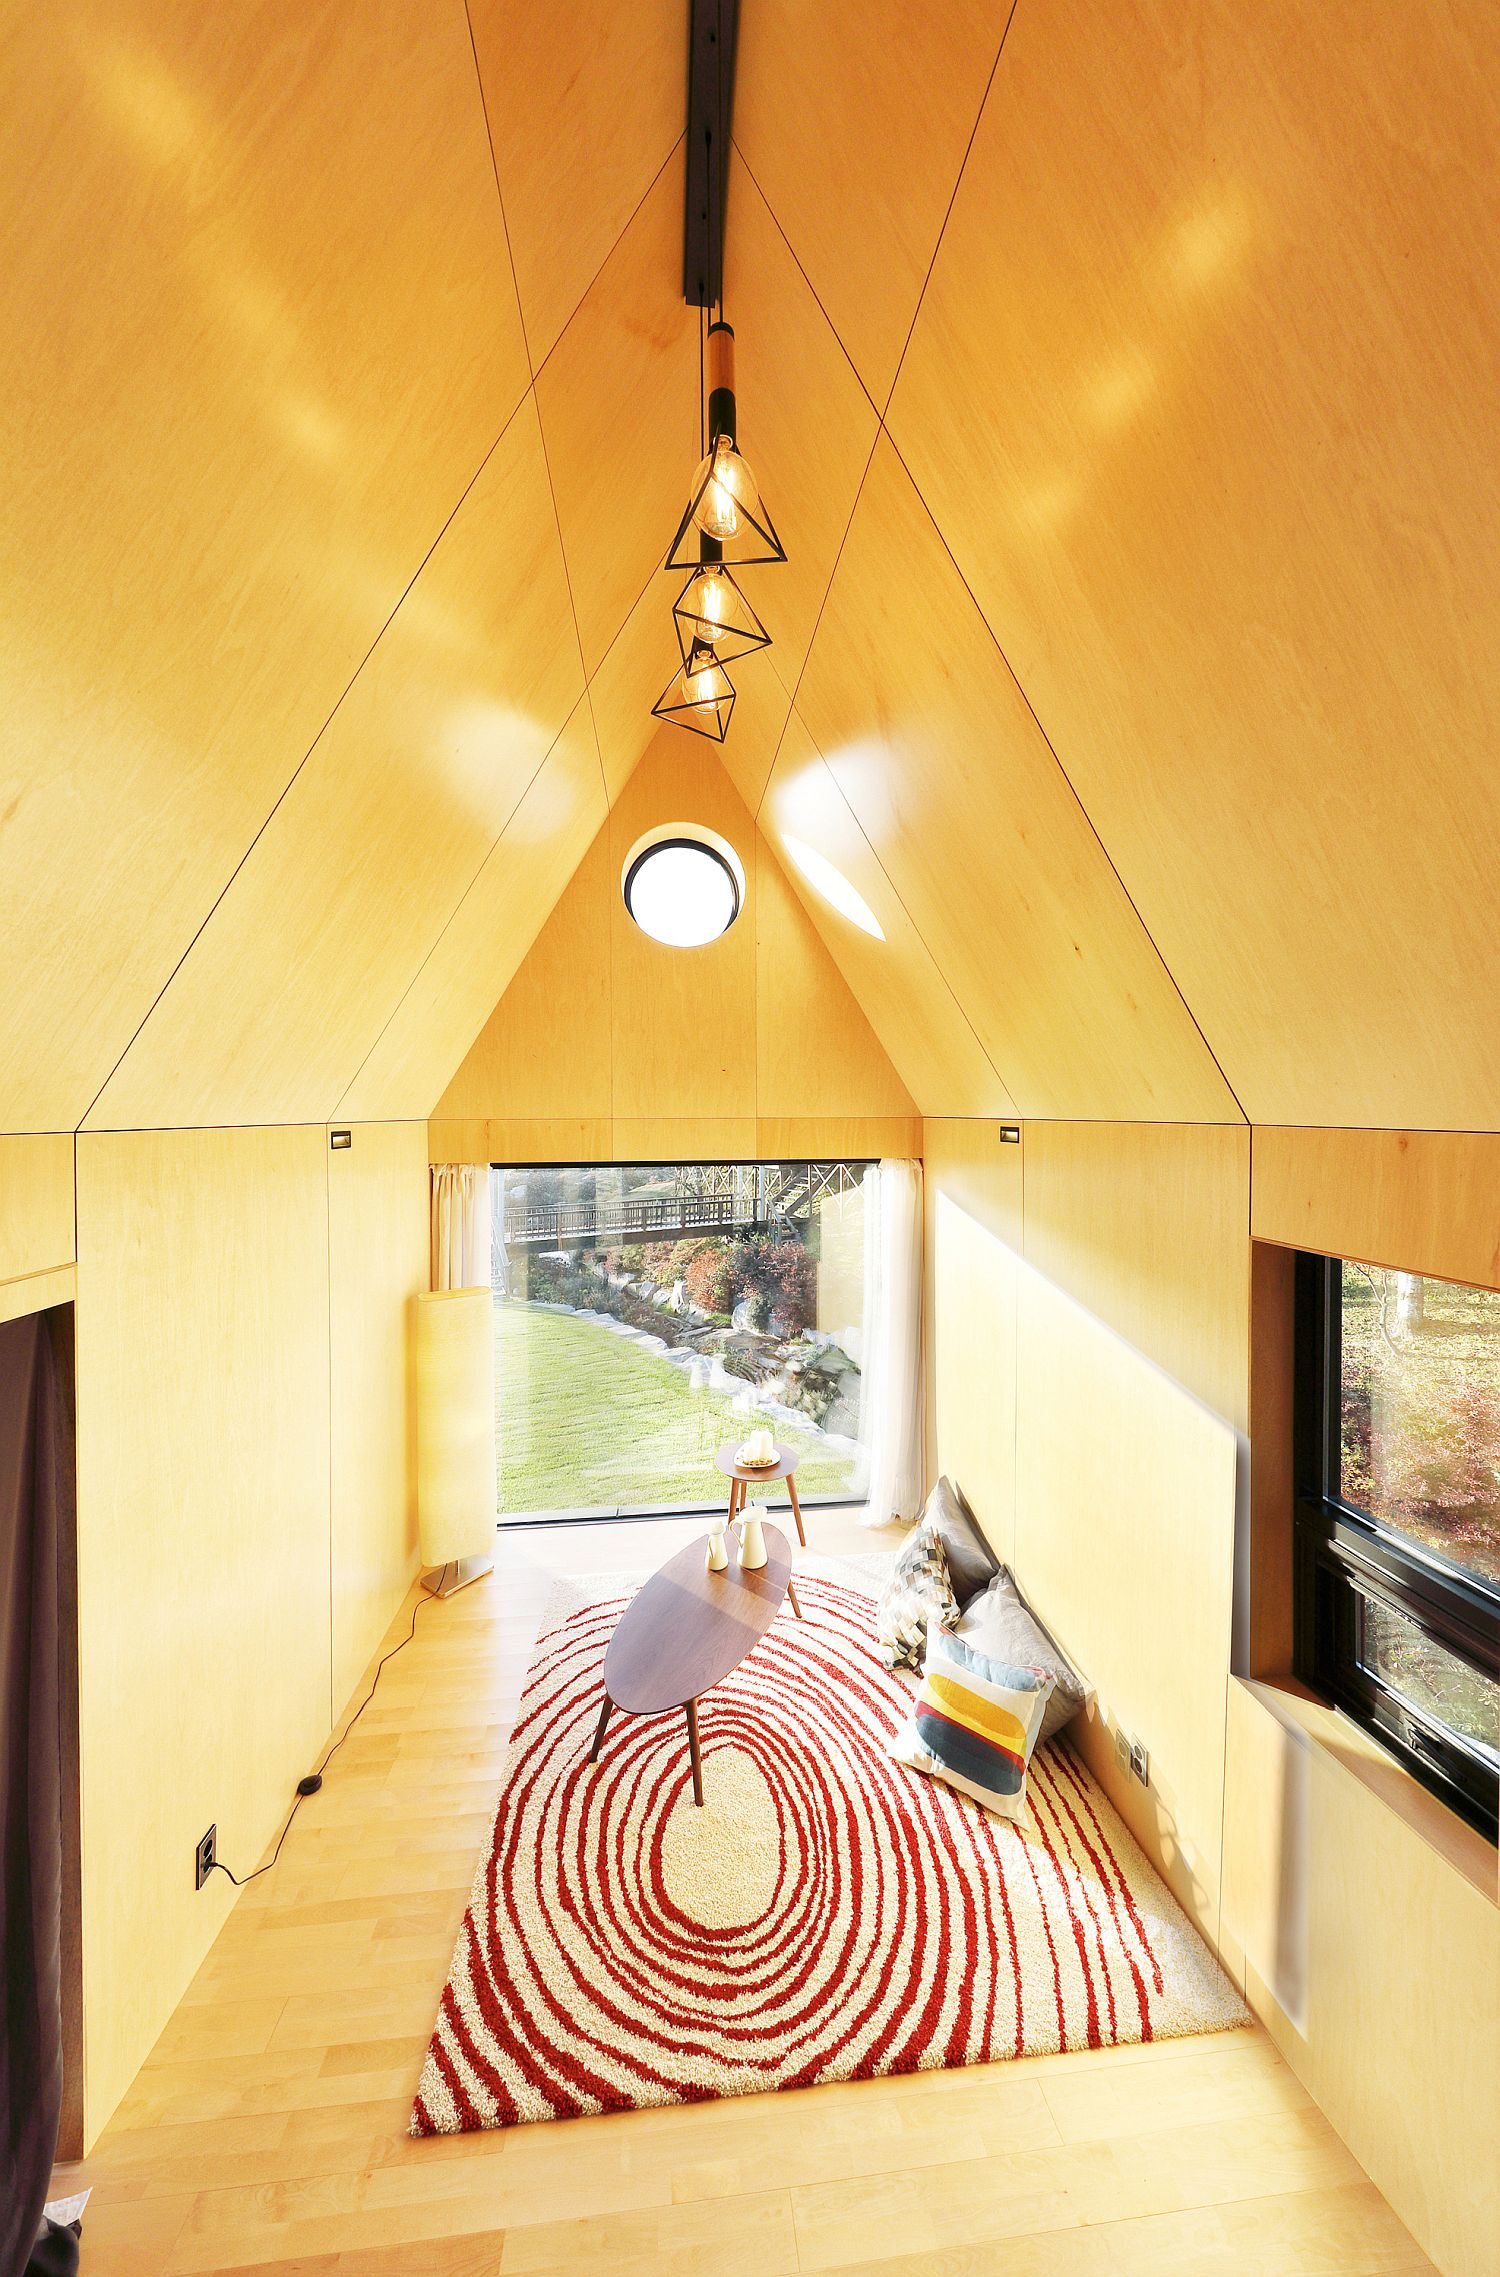 Livng area of the tiny home viewed from the loft